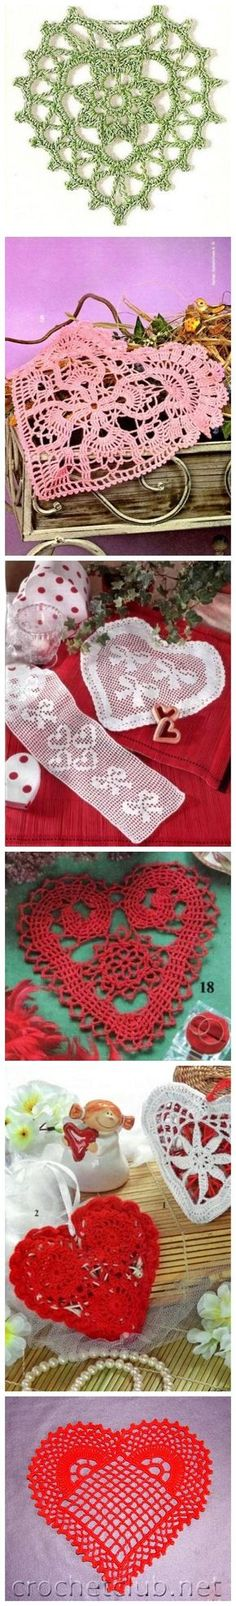 Many free crochet heart motif, sachet, ornament patterns.